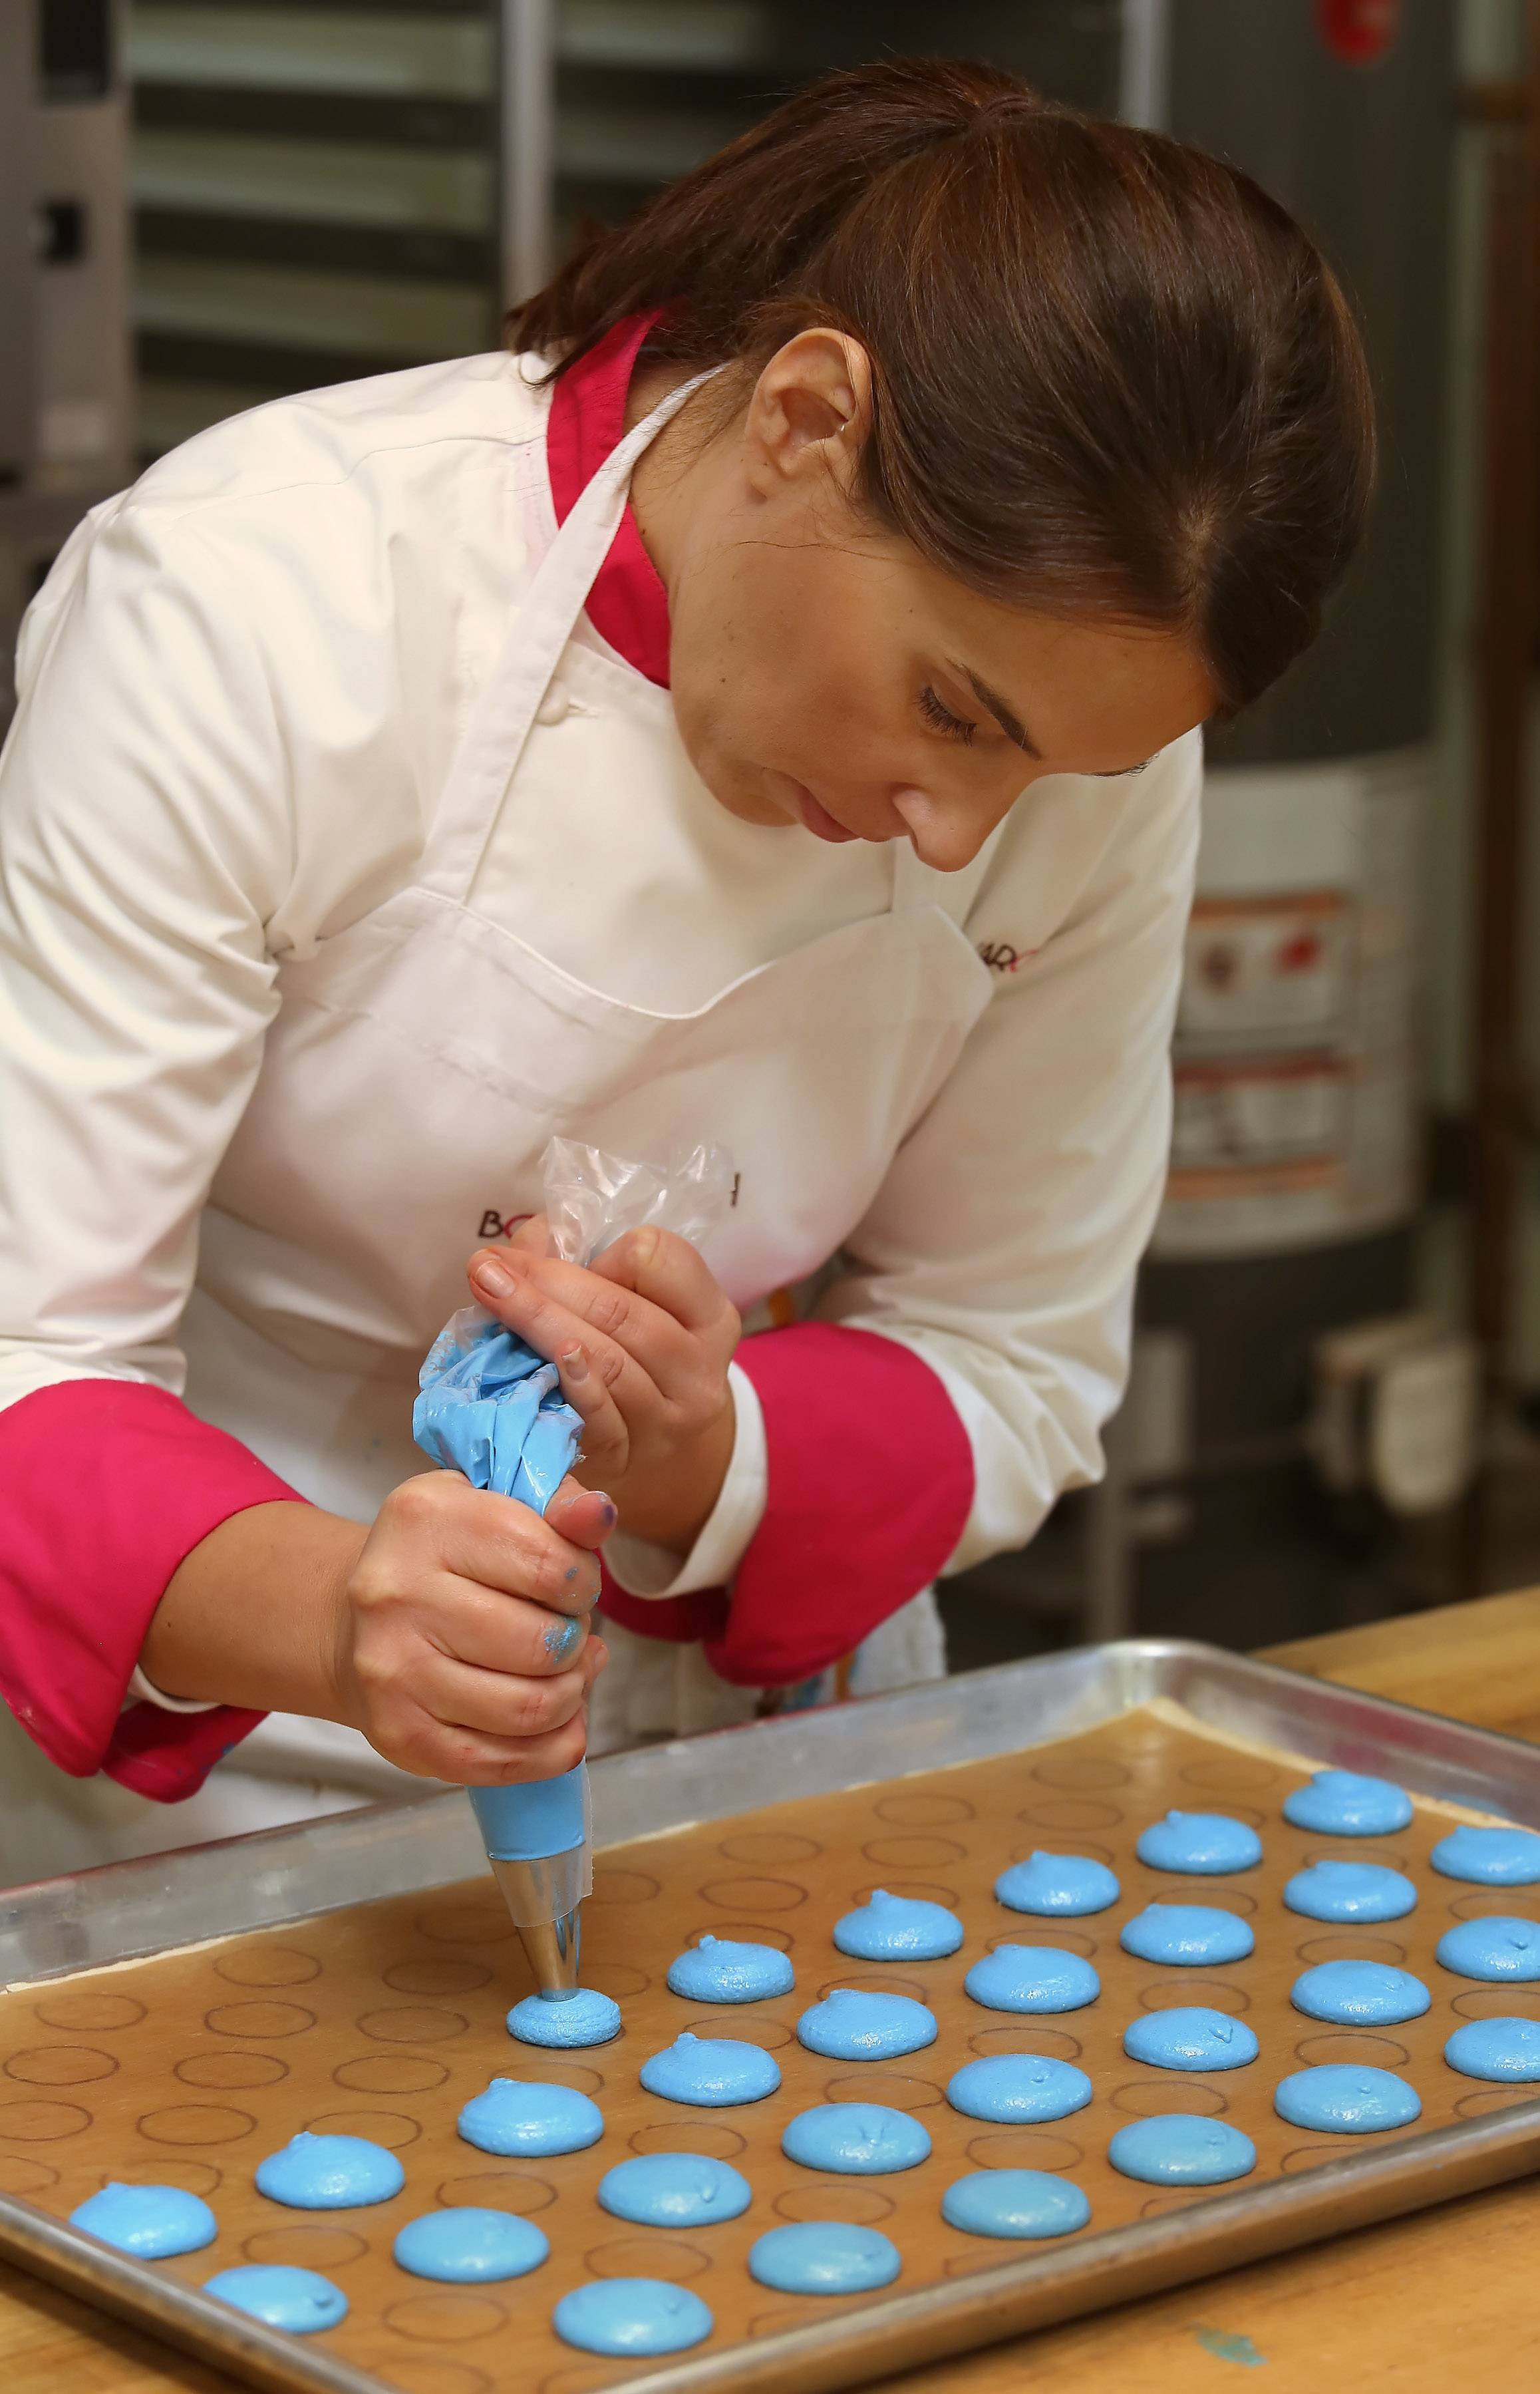 Barrington native Catherine Cooper of Bon Macaron Chicago makes the delicate French treat called macarons at Kitchen Chicago.